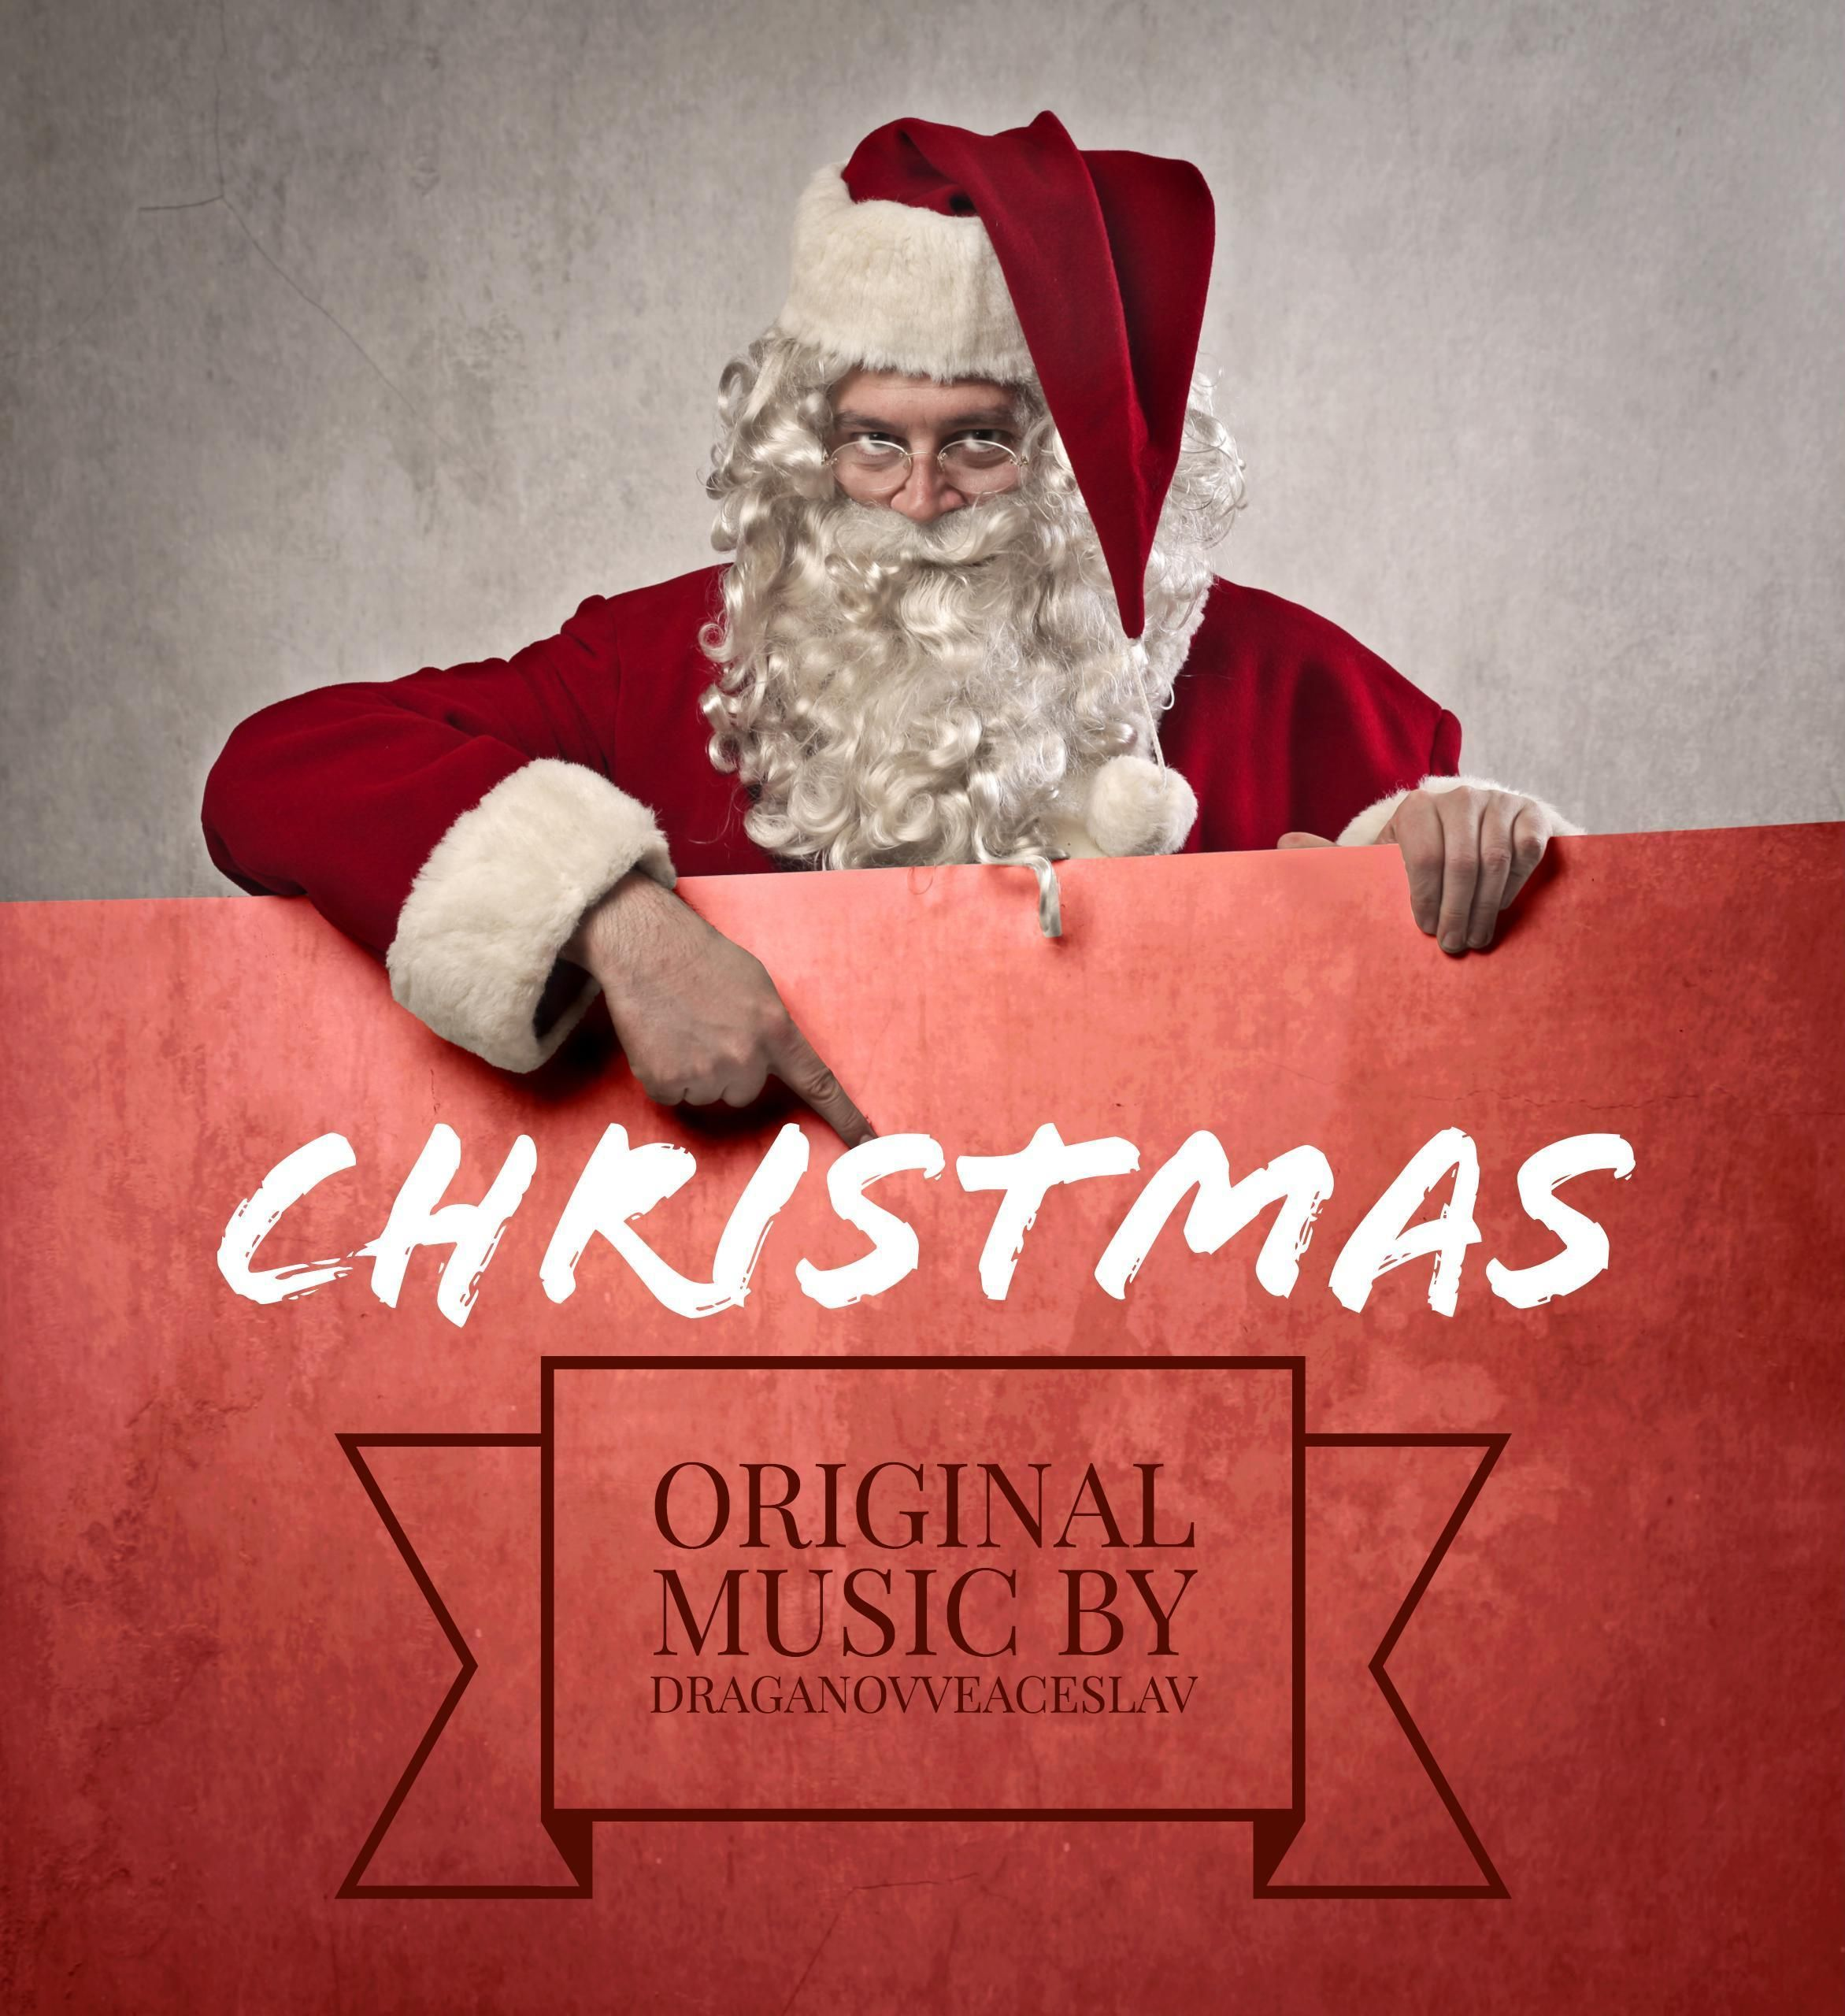 Christmas royalty free music for video audiopride royalty free christmas royalty free music for video kristyandbryce Choice Image